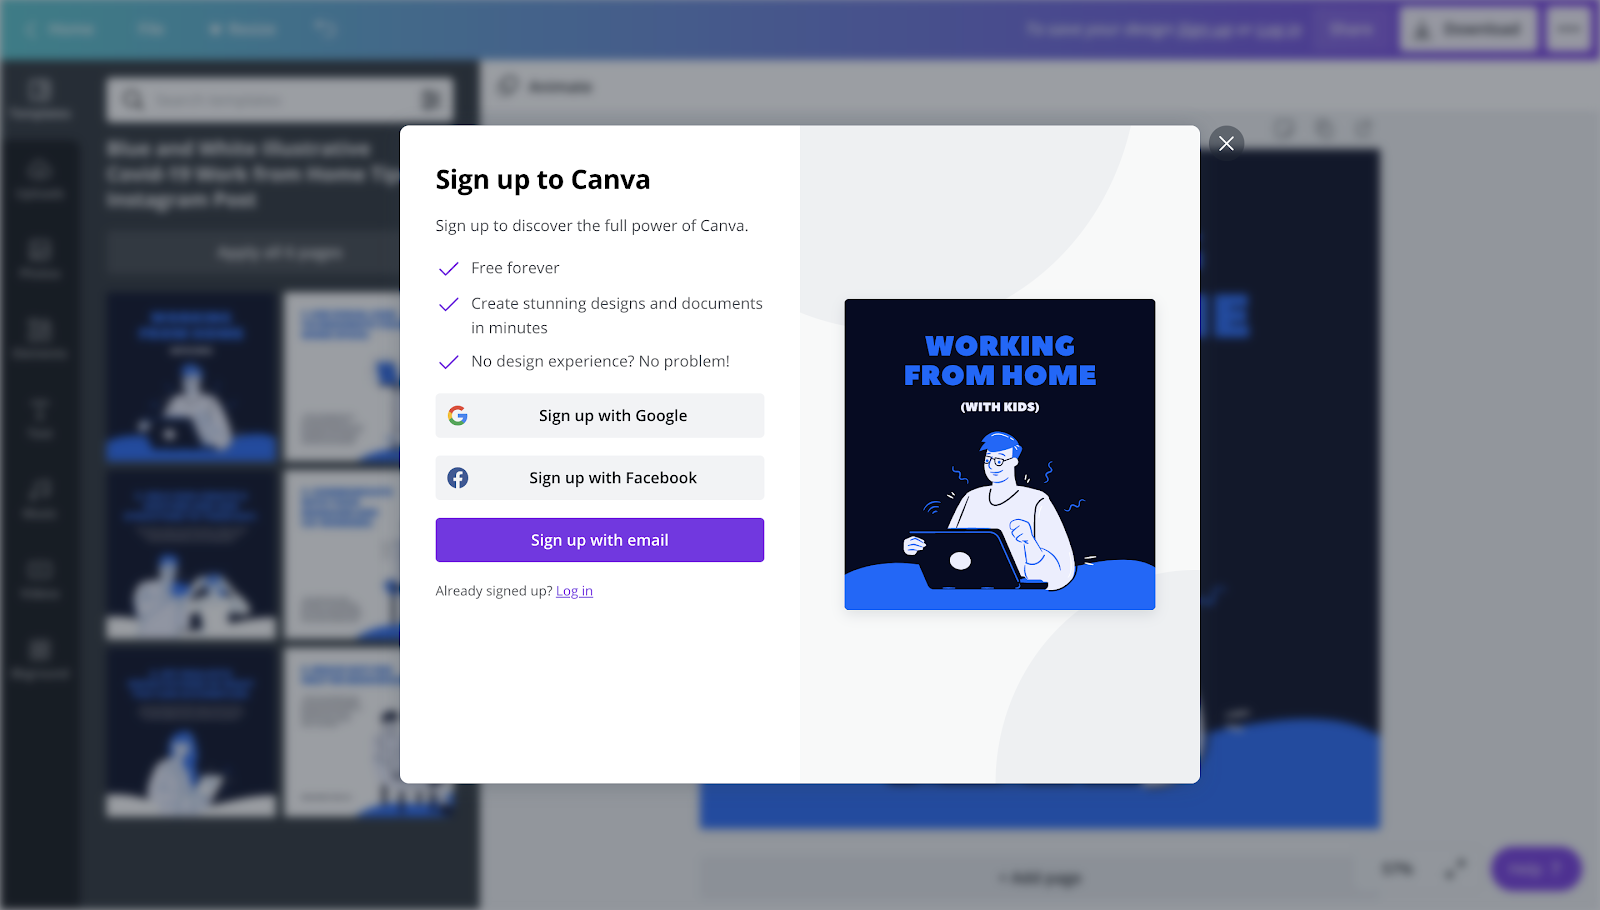 Canva sign up